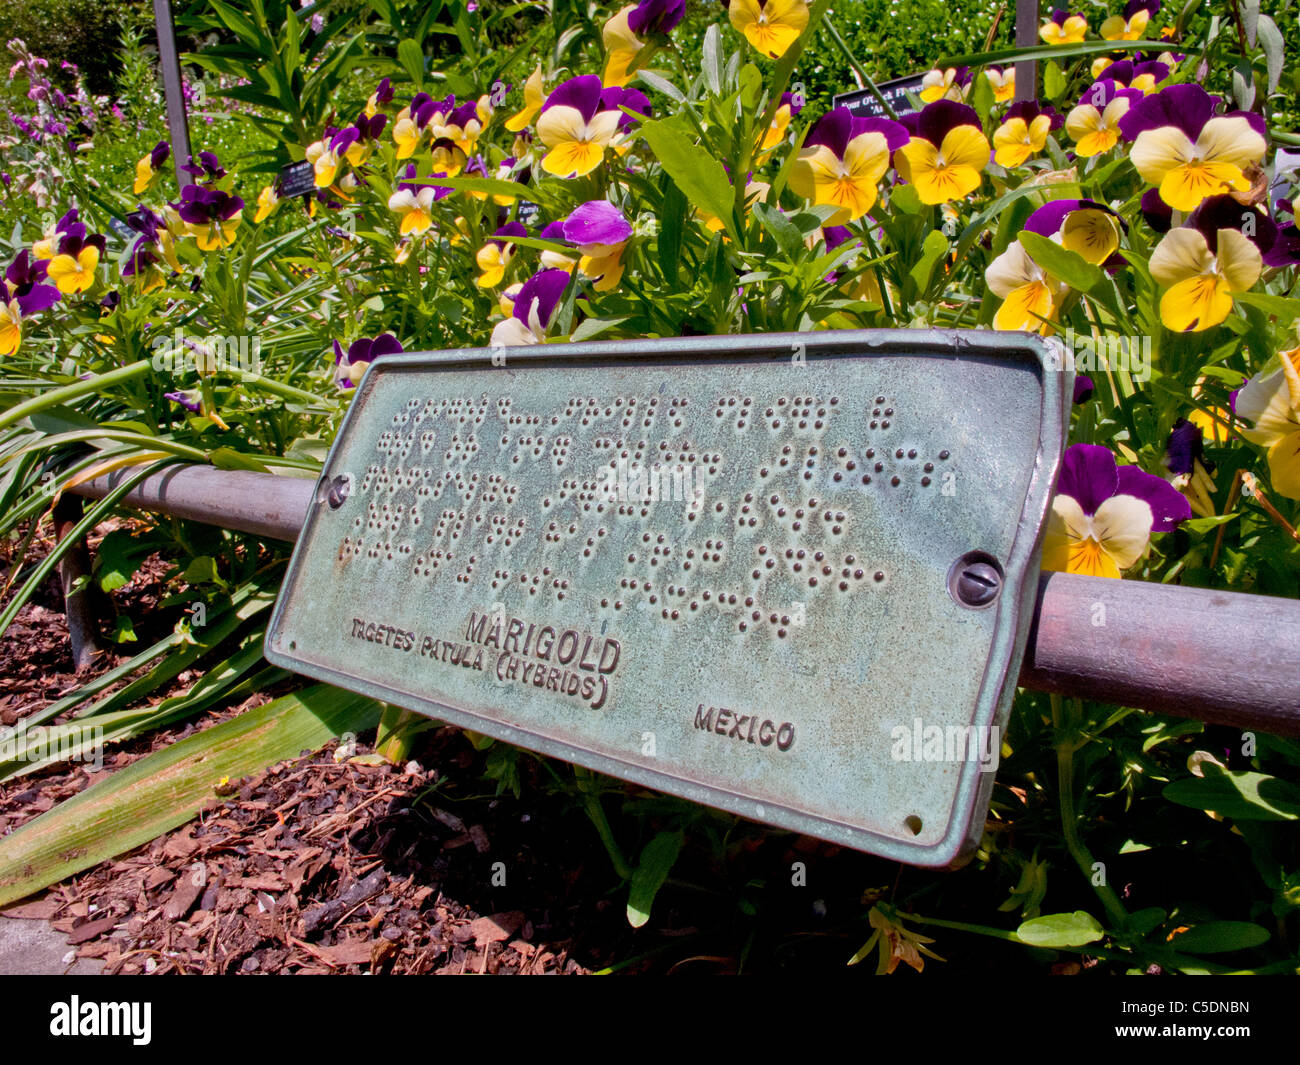 Signs in Braille guide the vision-impaired at the Alice Recknagel Ireys Fragrance Garden of the Brooklyn Botanic - Stock Image